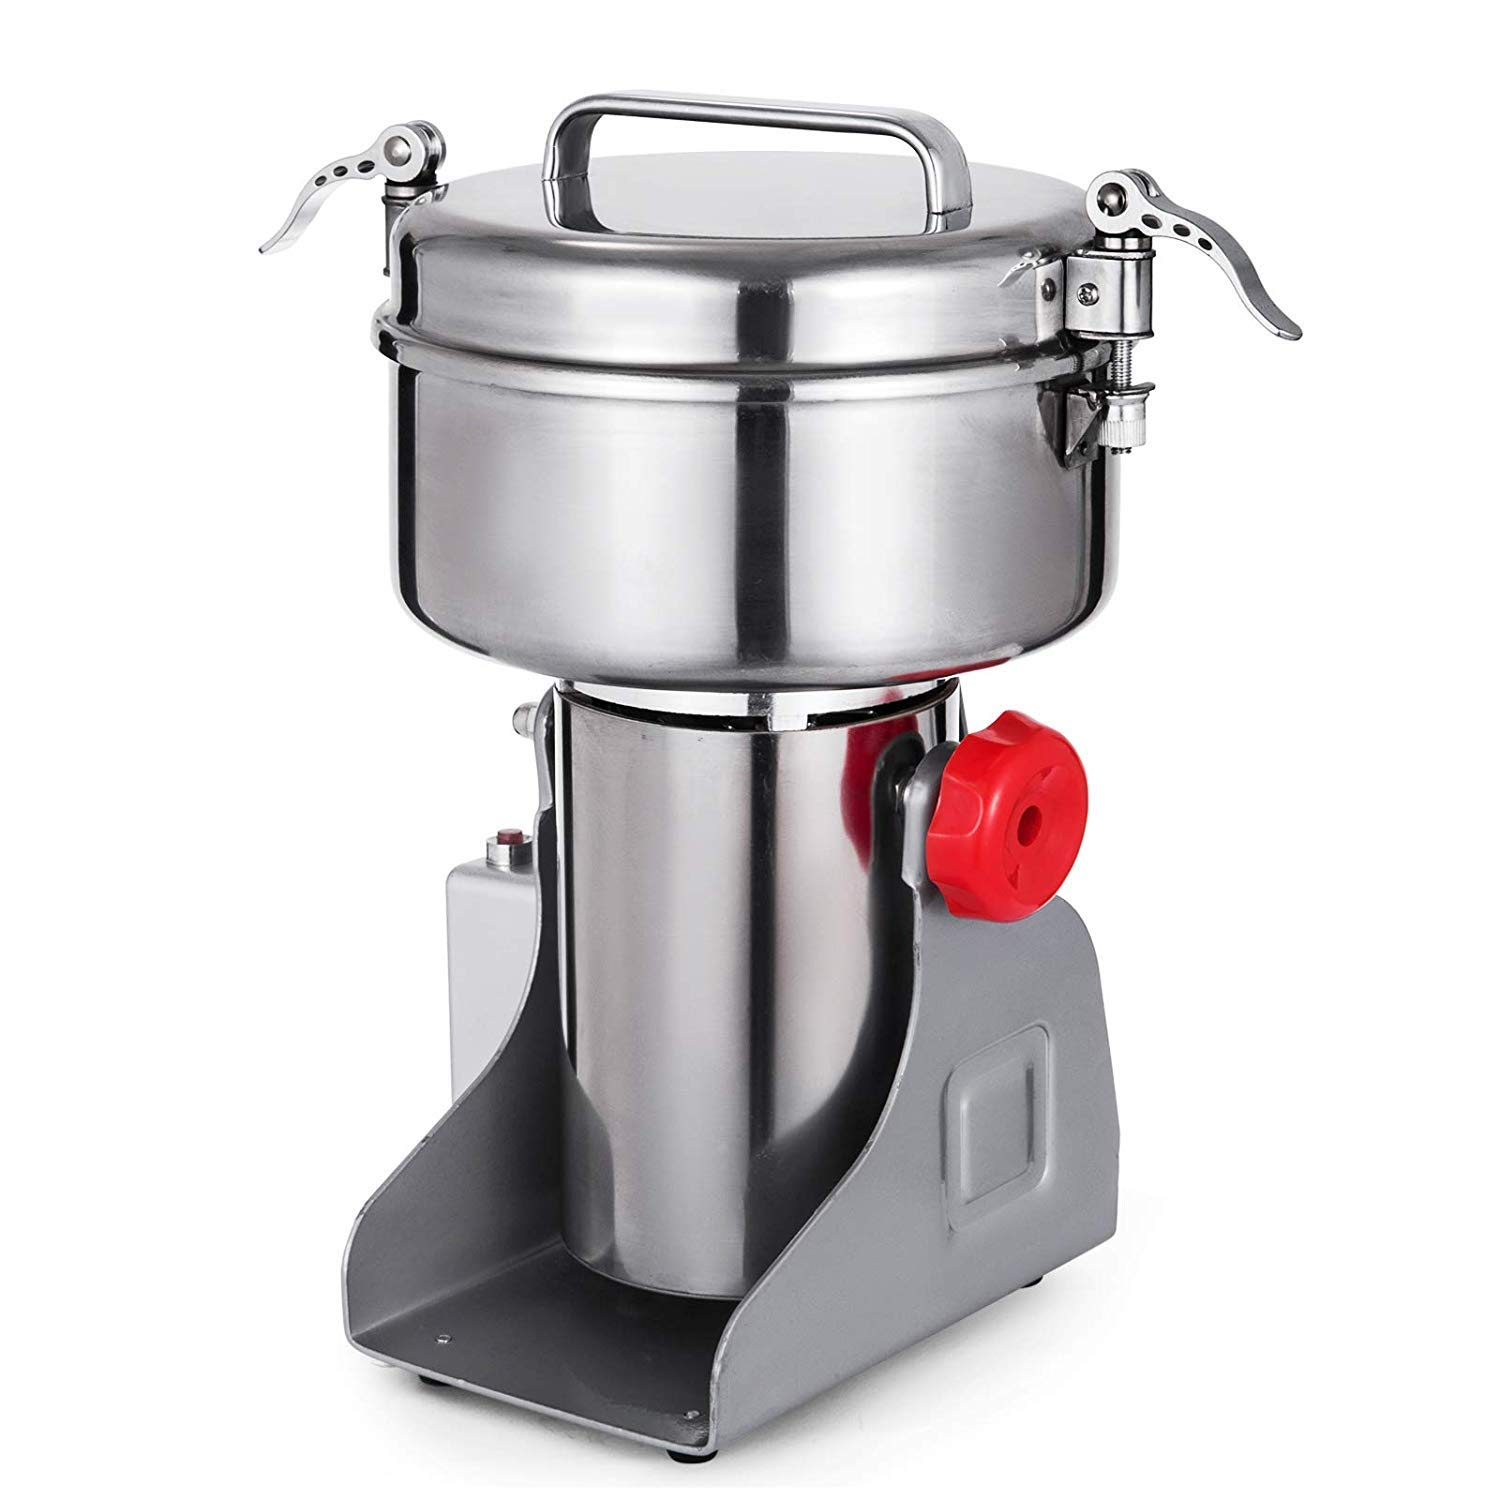 Mophorn 2000g Electric Grain Mill Grinder Powder Machine 4000W 50-300 Mesh Food Grade Stainless Steel for Kitchen Herb Spice Pepper Coffee by Mophorn